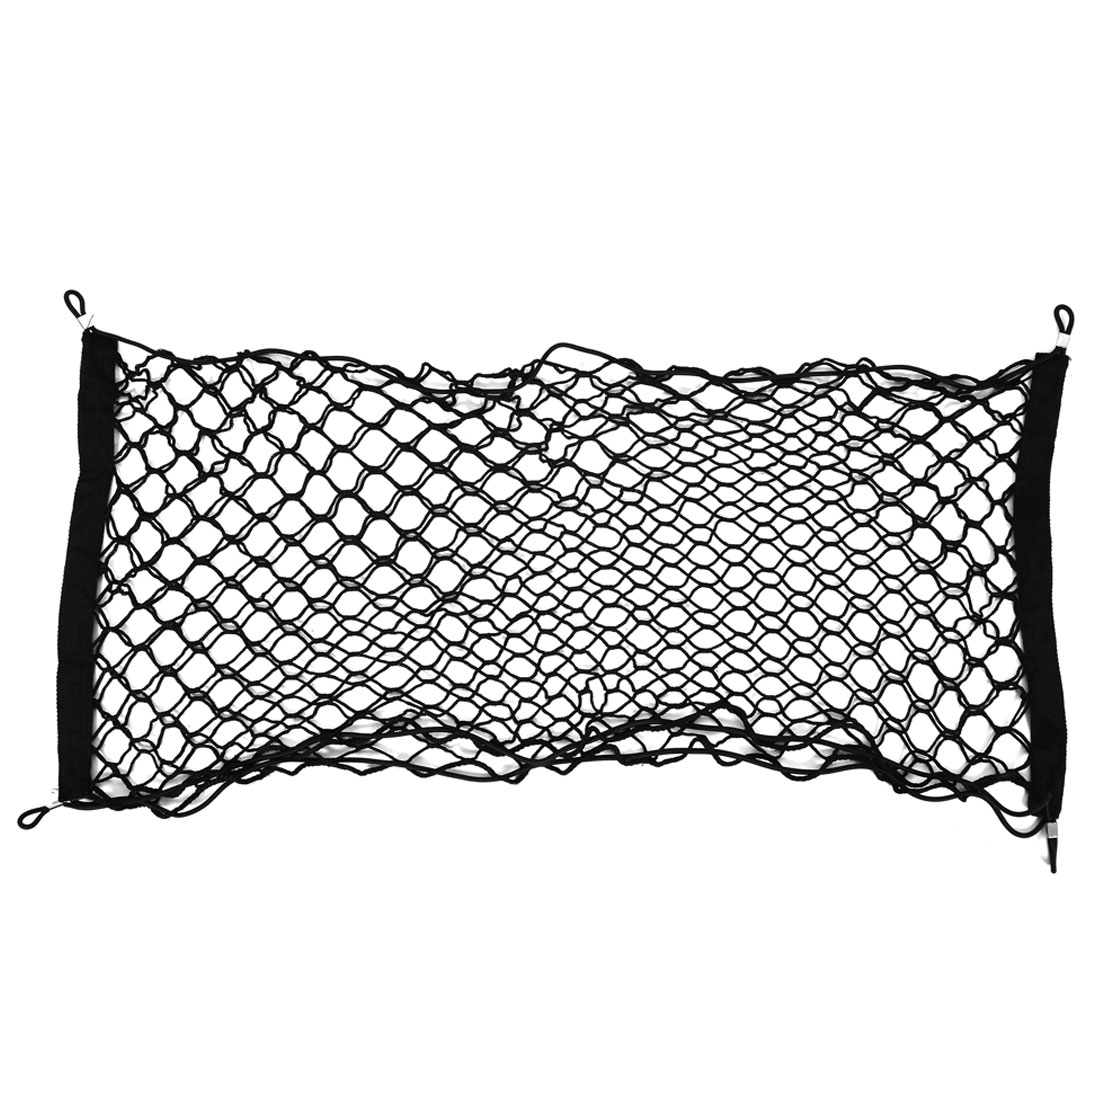 Auto Car Black Nylon Elastic Flexible Bungee Luggage Storage Net 100cm x 40cm